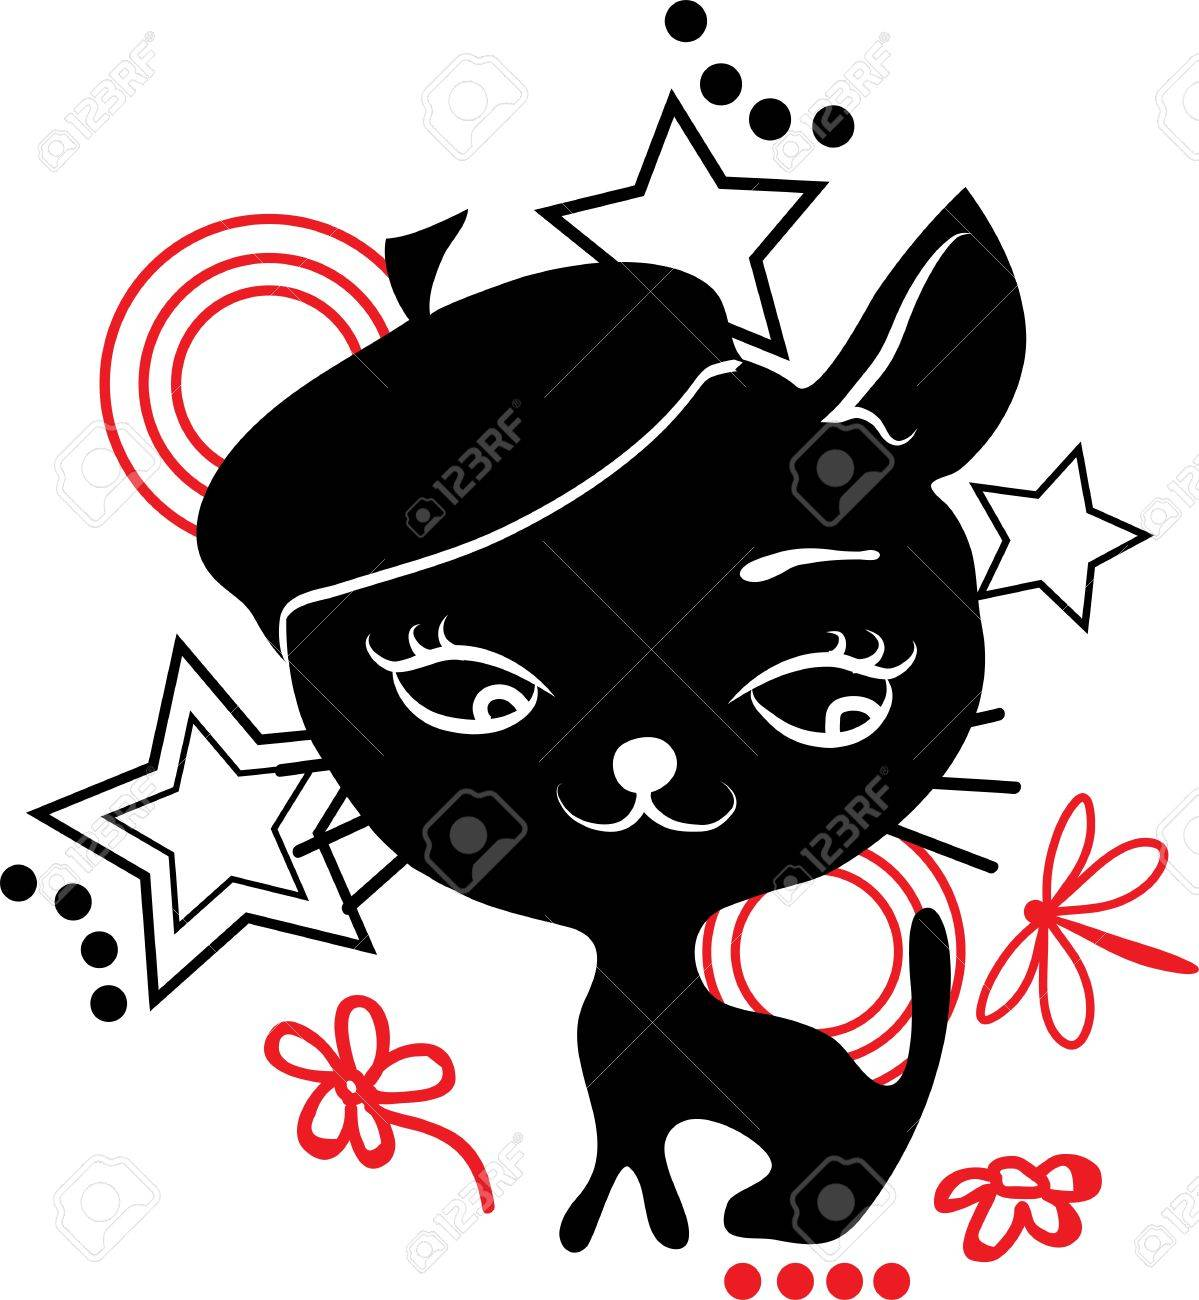 Cat silhouette in hat Black and red Stock Vector - 17933500